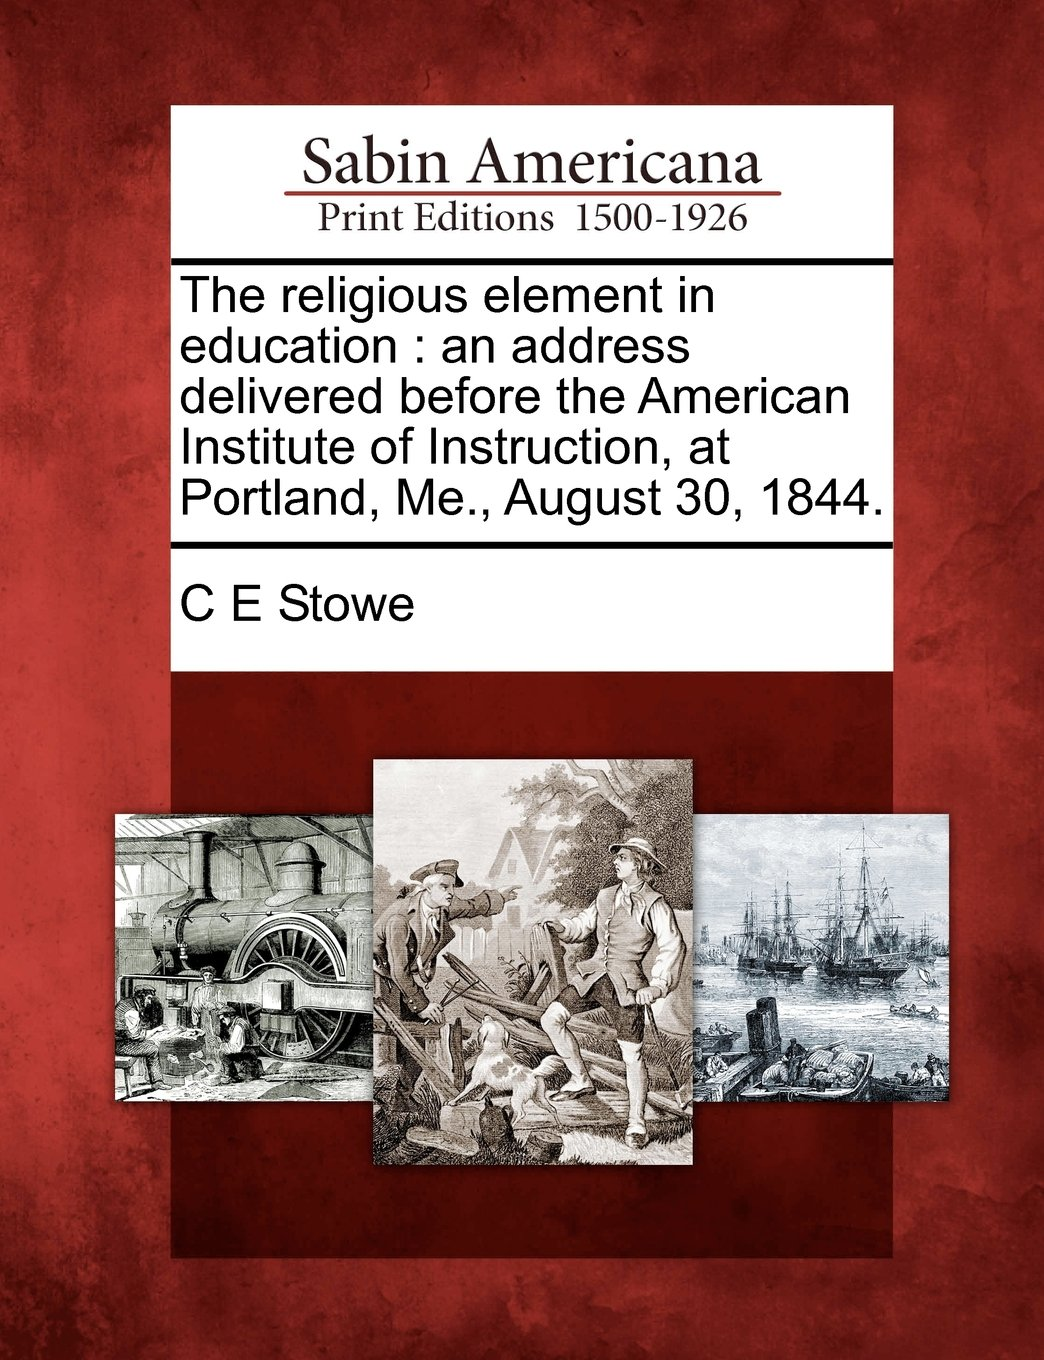 The religious element in education: an address delivered before the American Institute of Instruction, at Portland, Me., August 30, 1844. Text fb2 book